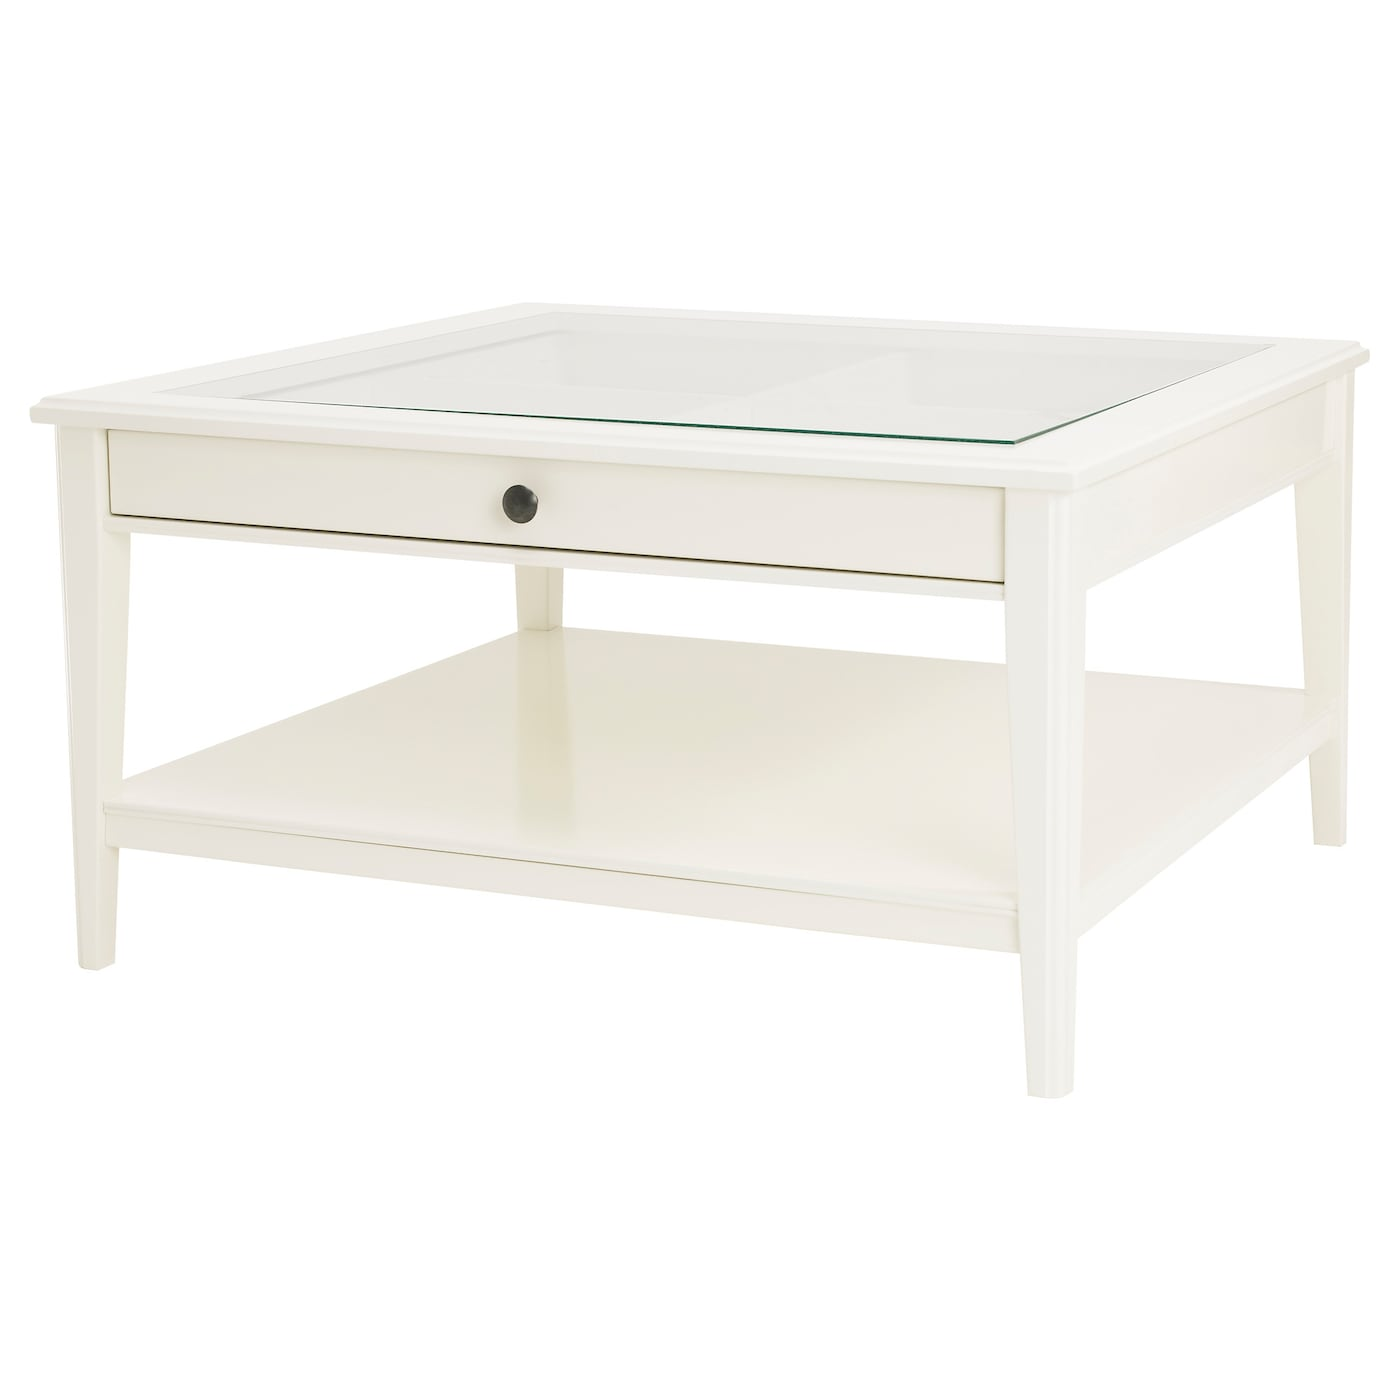 liatorp coffee table white glass 93x93 cm ikea. Black Bedroom Furniture Sets. Home Design Ideas